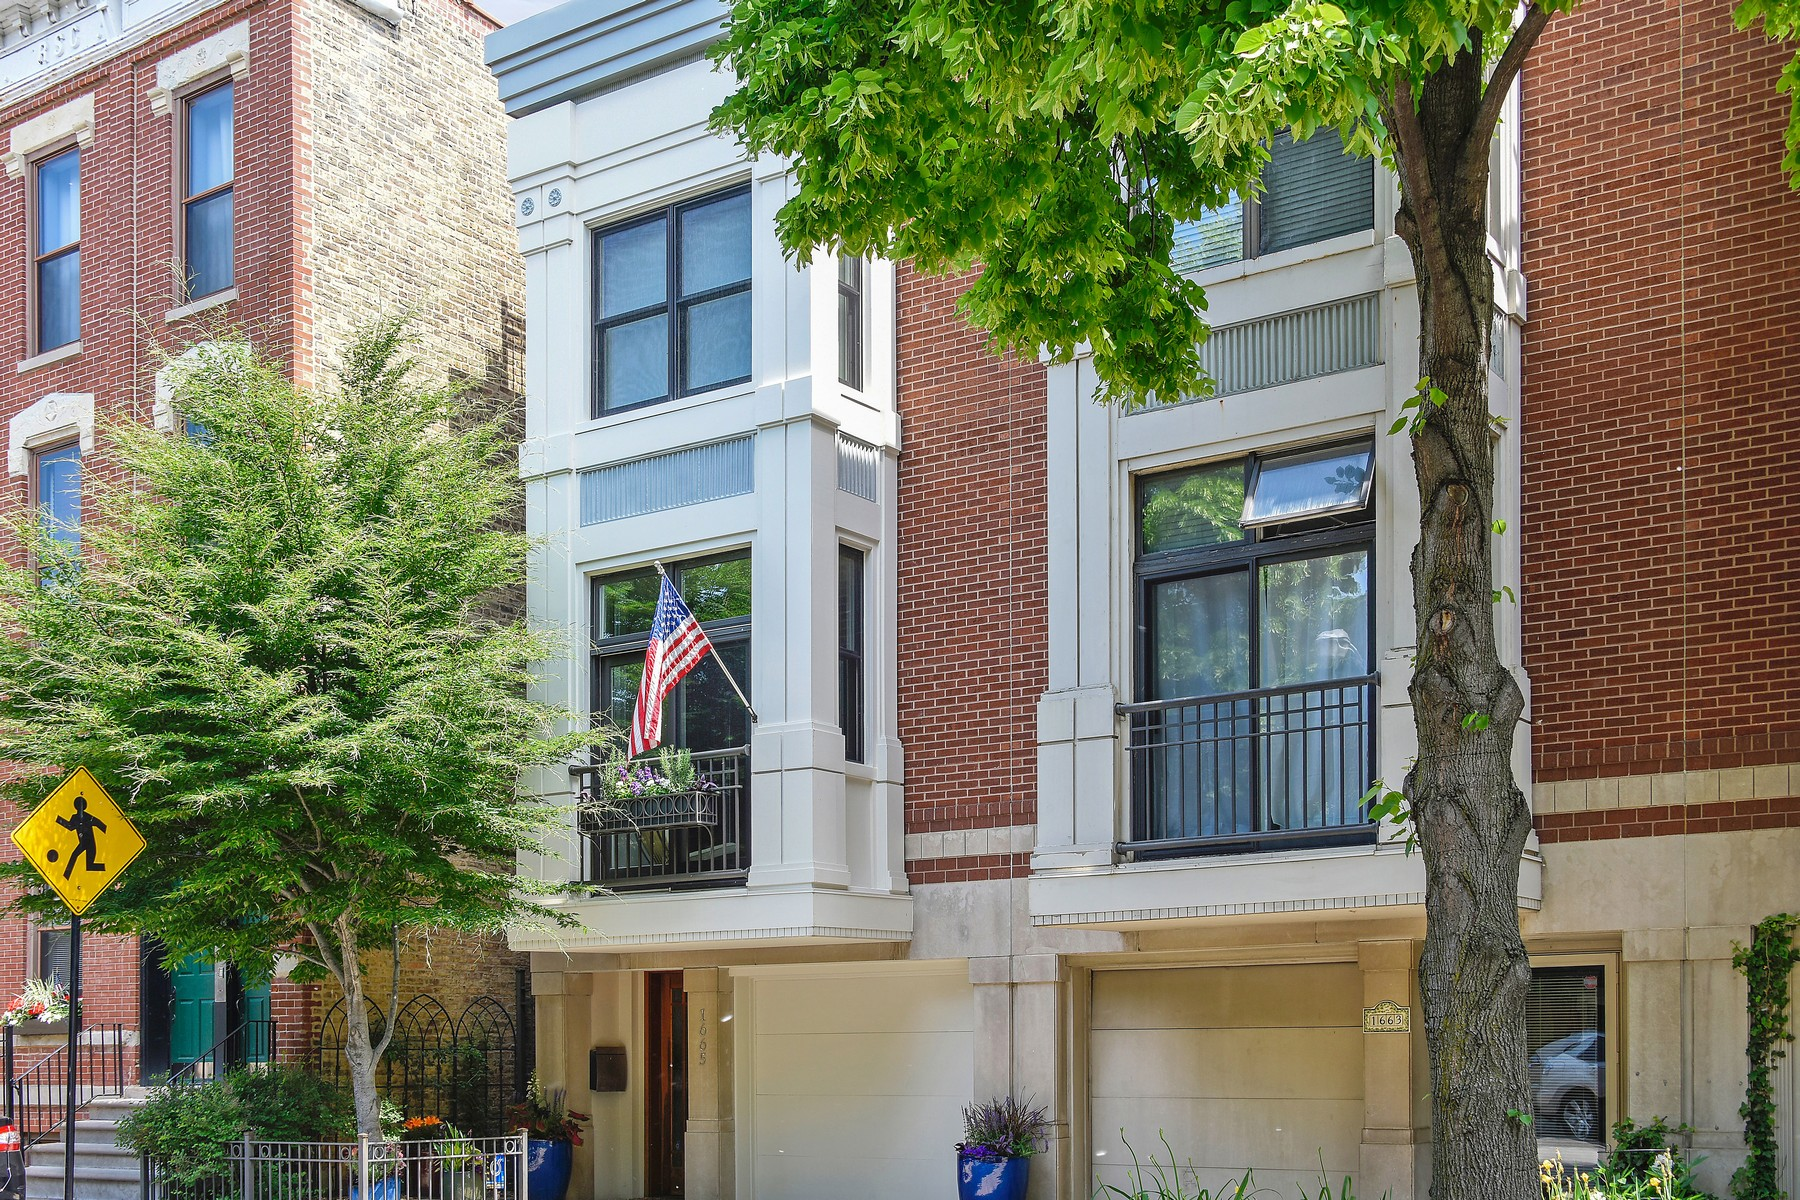 独户住宅 为 销售 在 Exquisite and Exceptional Smart Home 1665 N Bissell Street, Lincoln Park, 芝加哥, 伊利诺斯州, 60614 美国